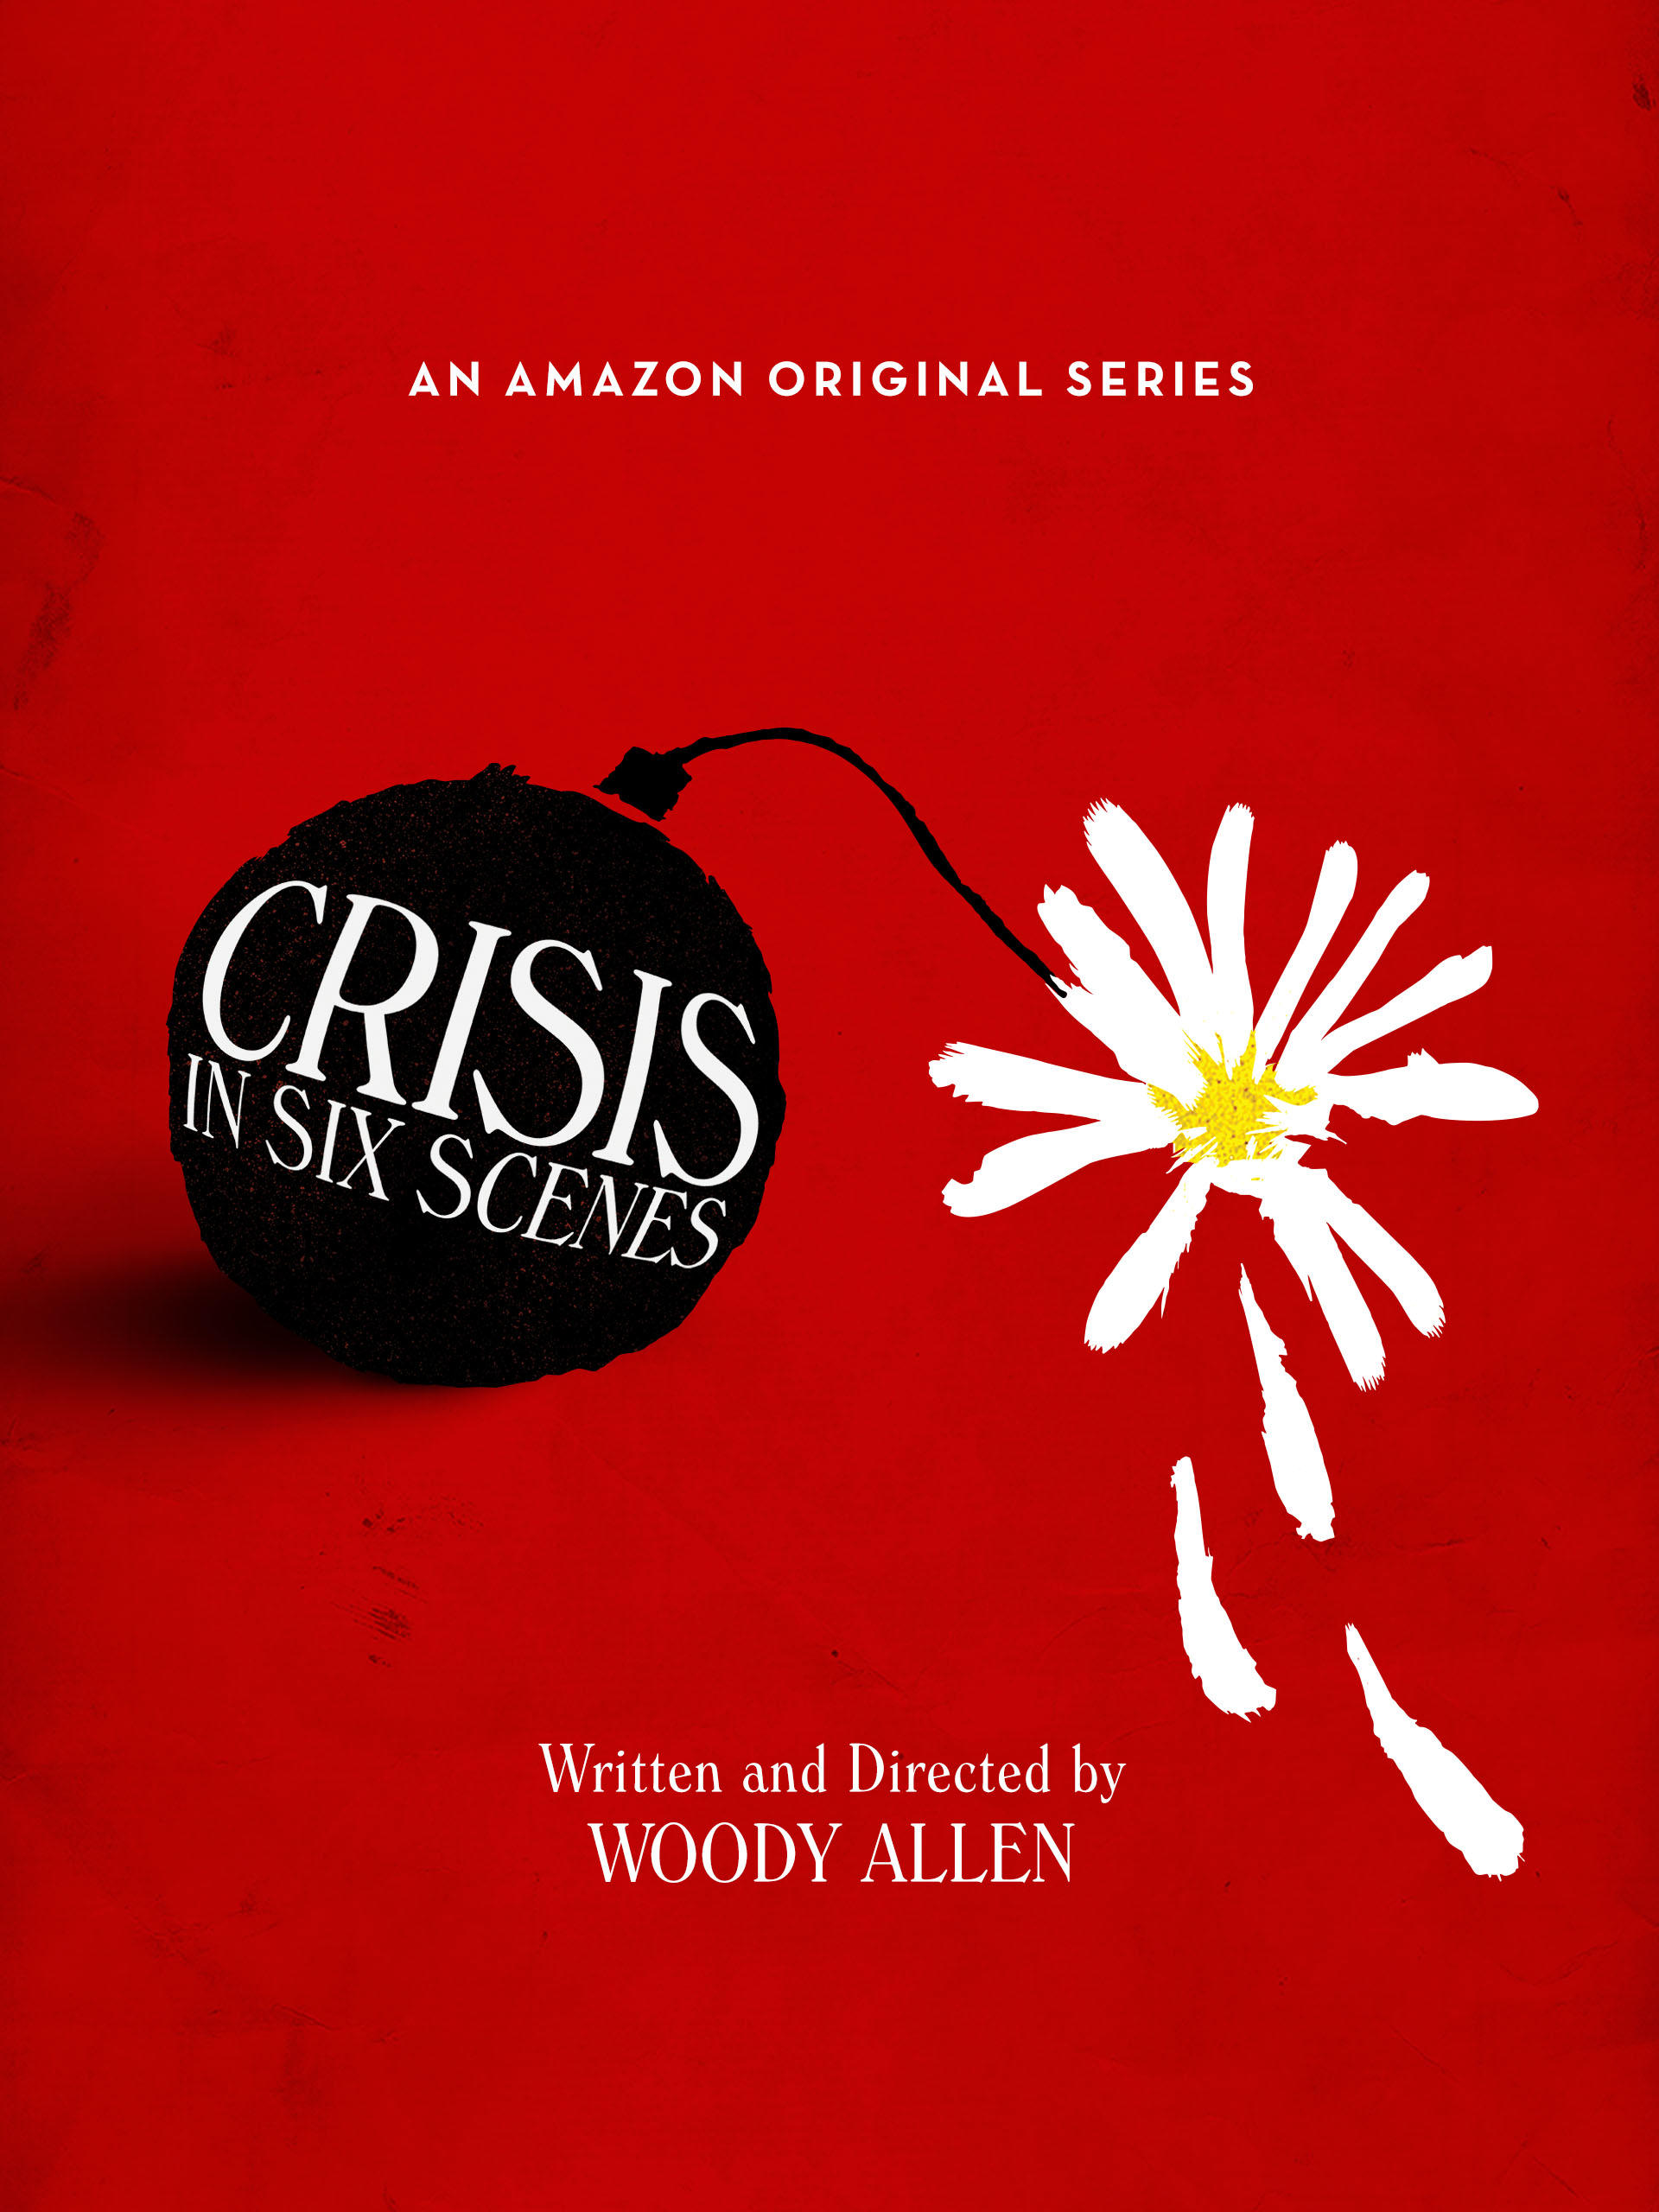 Review | Crisis in Six Scenes